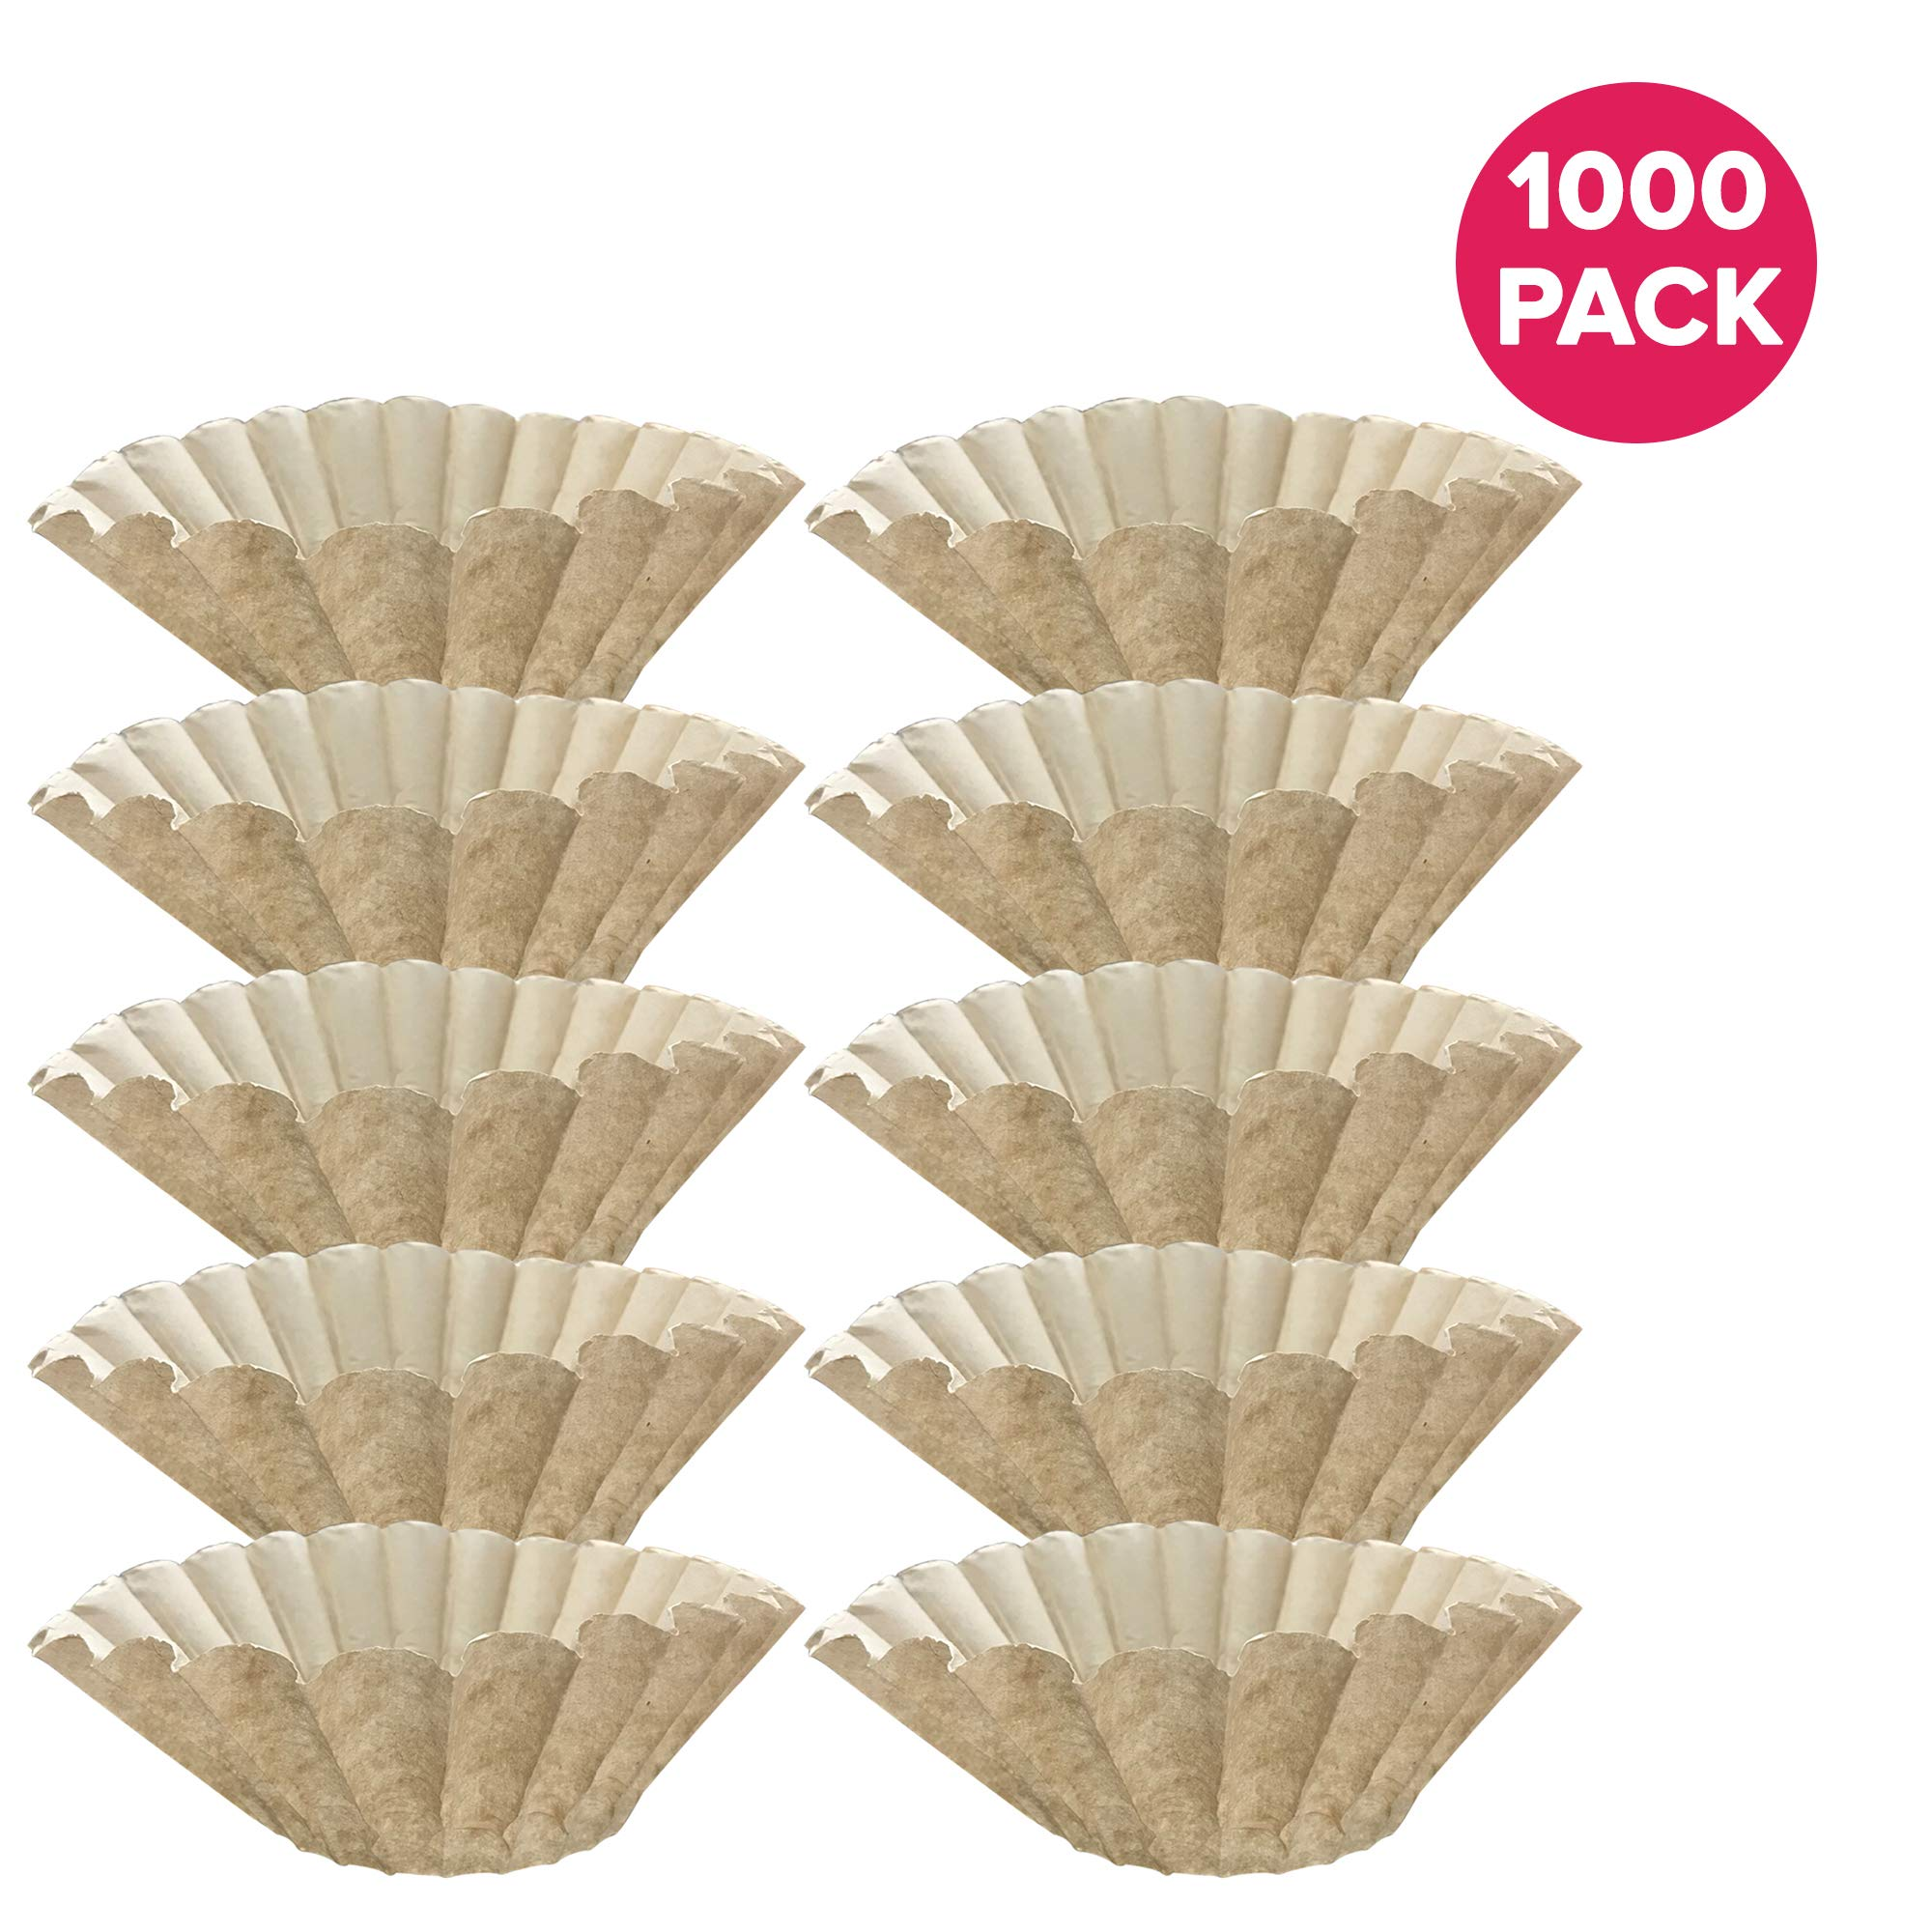 Think Crucial 1000PK Replacement for Bunn Unbleached Paper Coffee Filter Fits 12 Cup Commercial Coffee Brewers, Compatible with Part # 1M5002 & 20115.0000 by Think Crucial